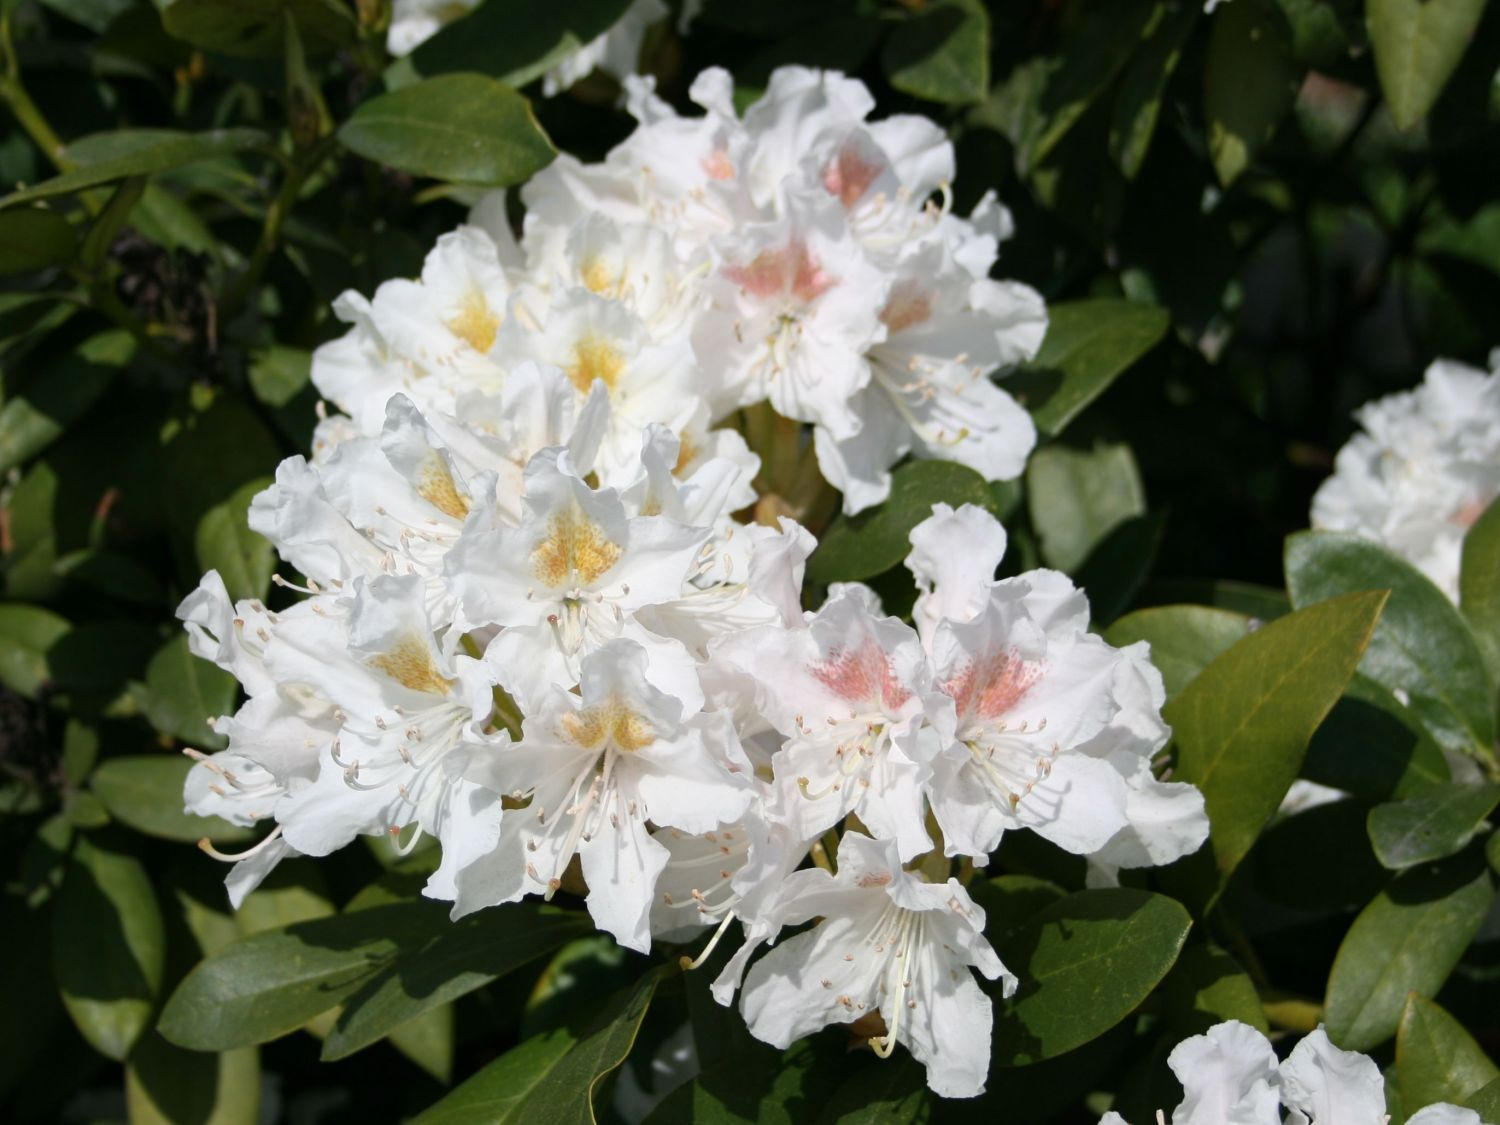 Pflege Rhododendron Rhododendron 39cunningham 39s White 39 Rhododendron Hybride